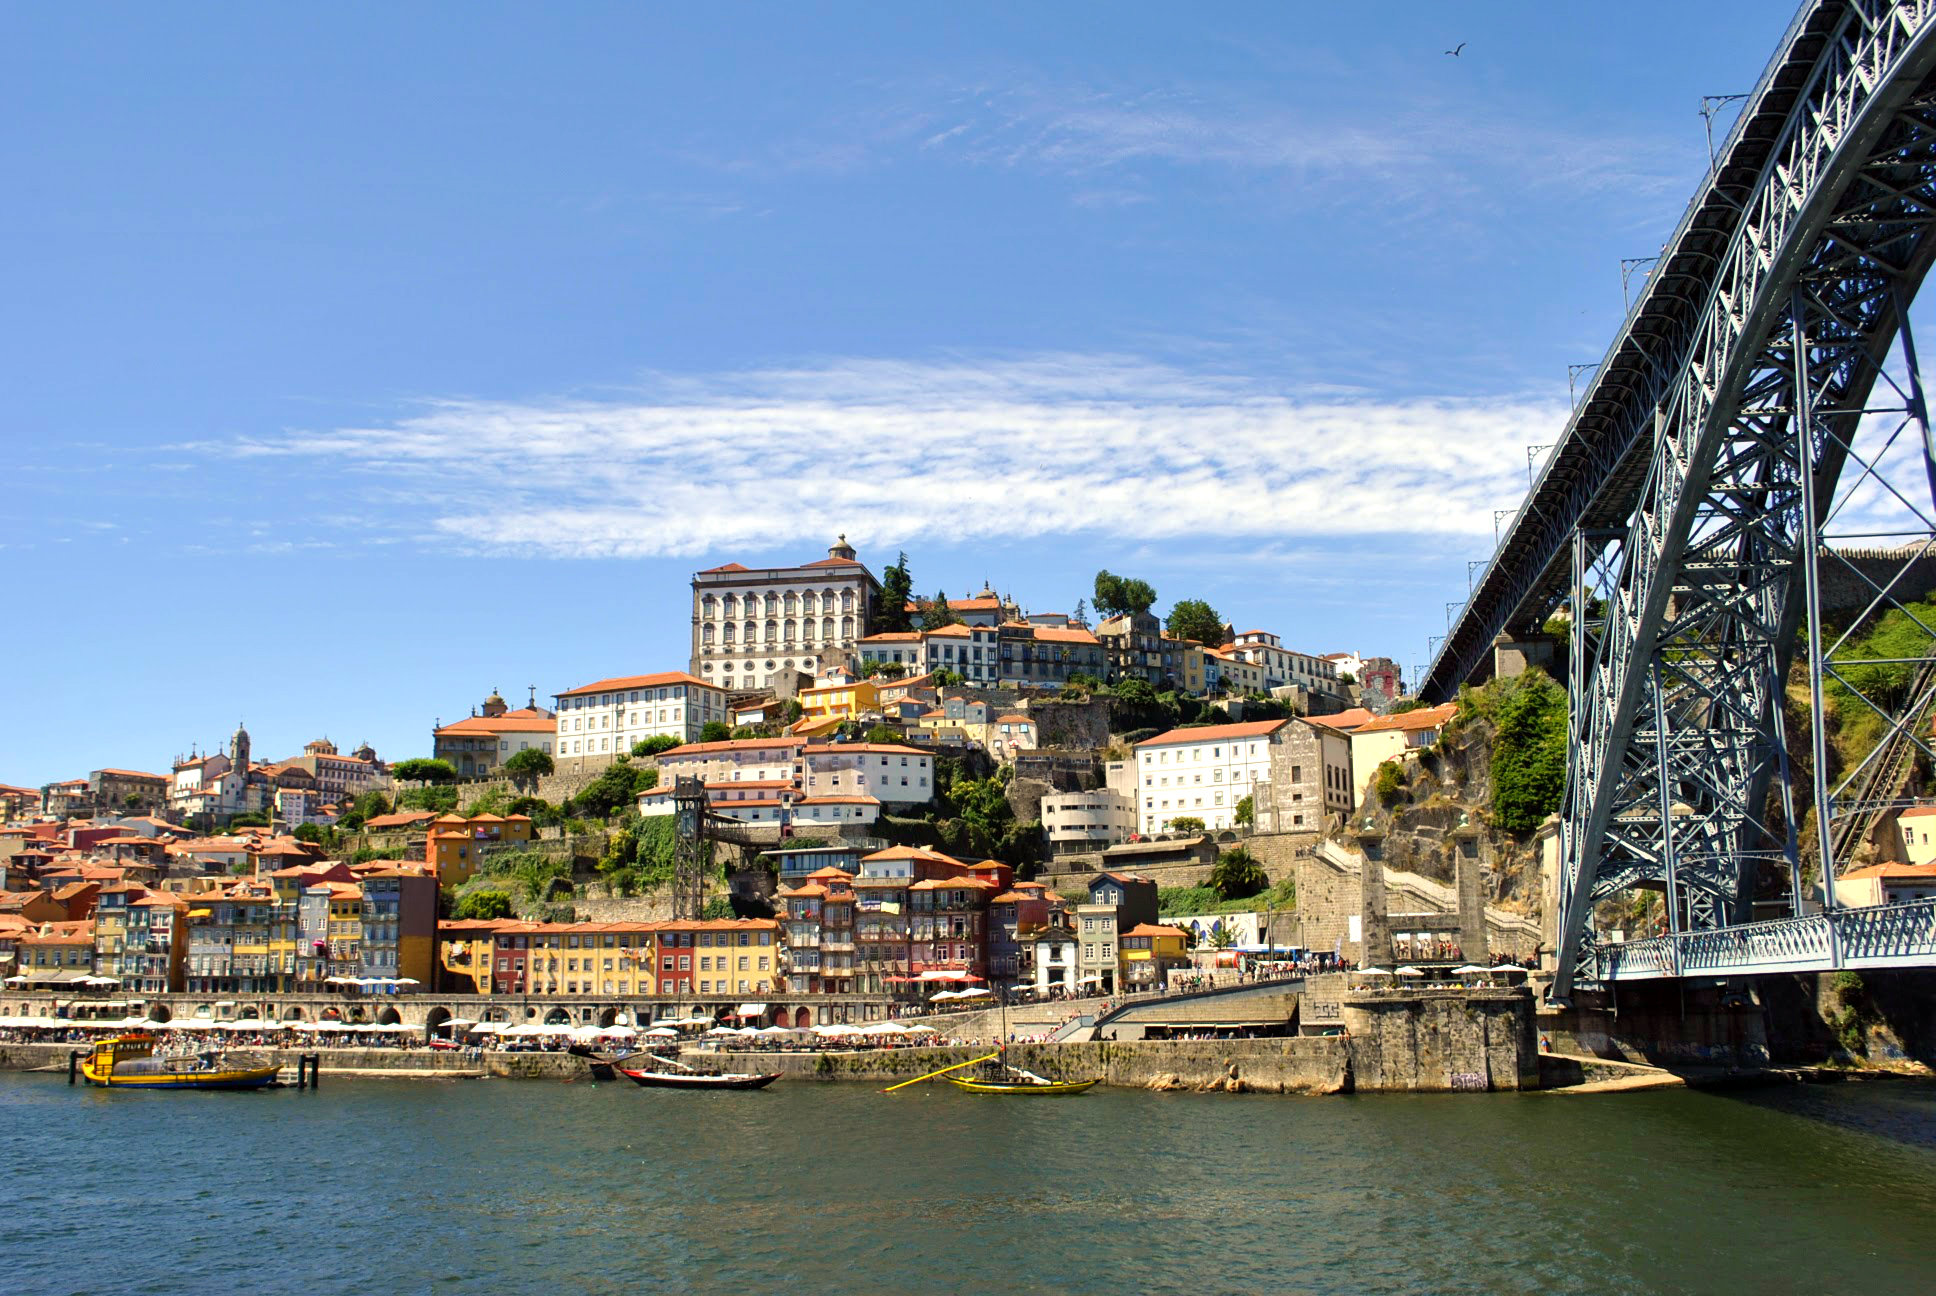 Porto Riverside View. From its old medieval quarter to unique modern architecture, Porto doesn't disappoint. Read my favorite things to do places to visit in Porto.